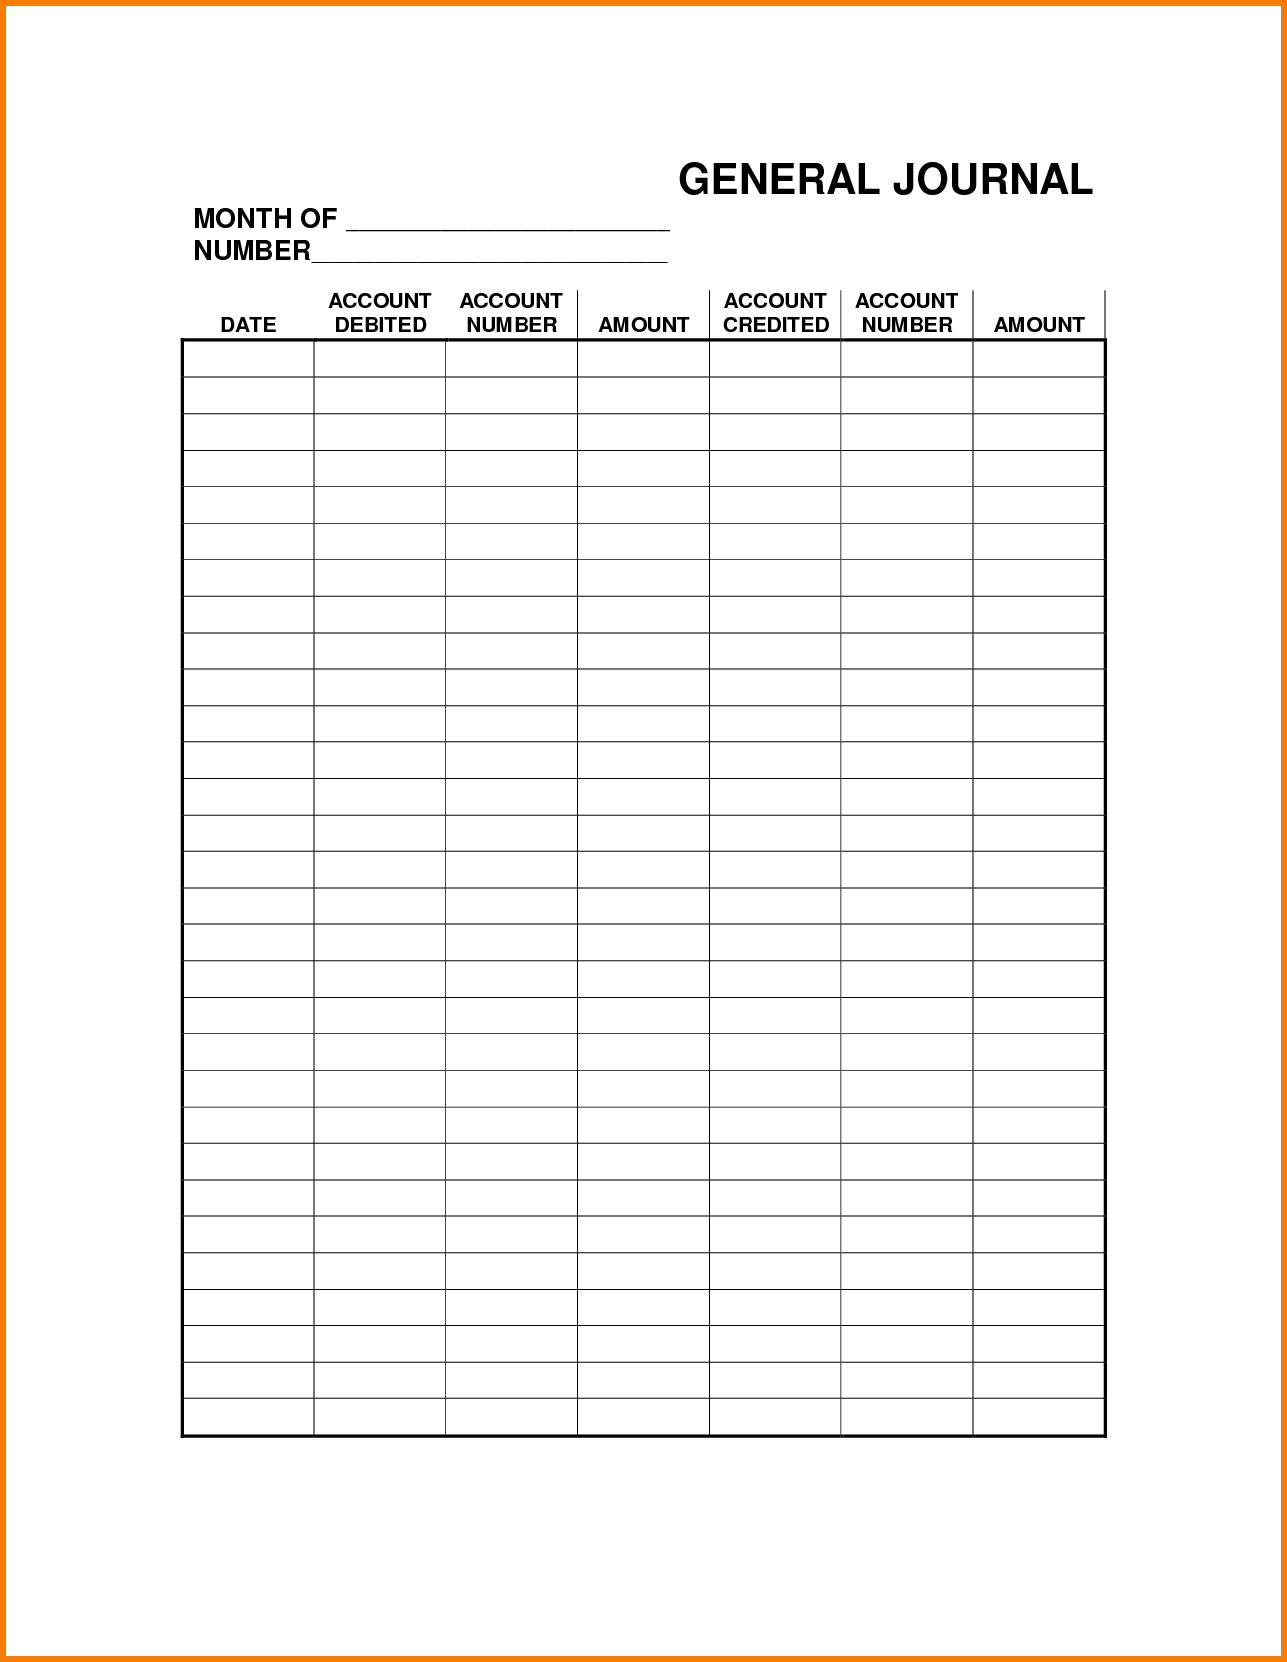 general journal template excel April.onthemarch.co